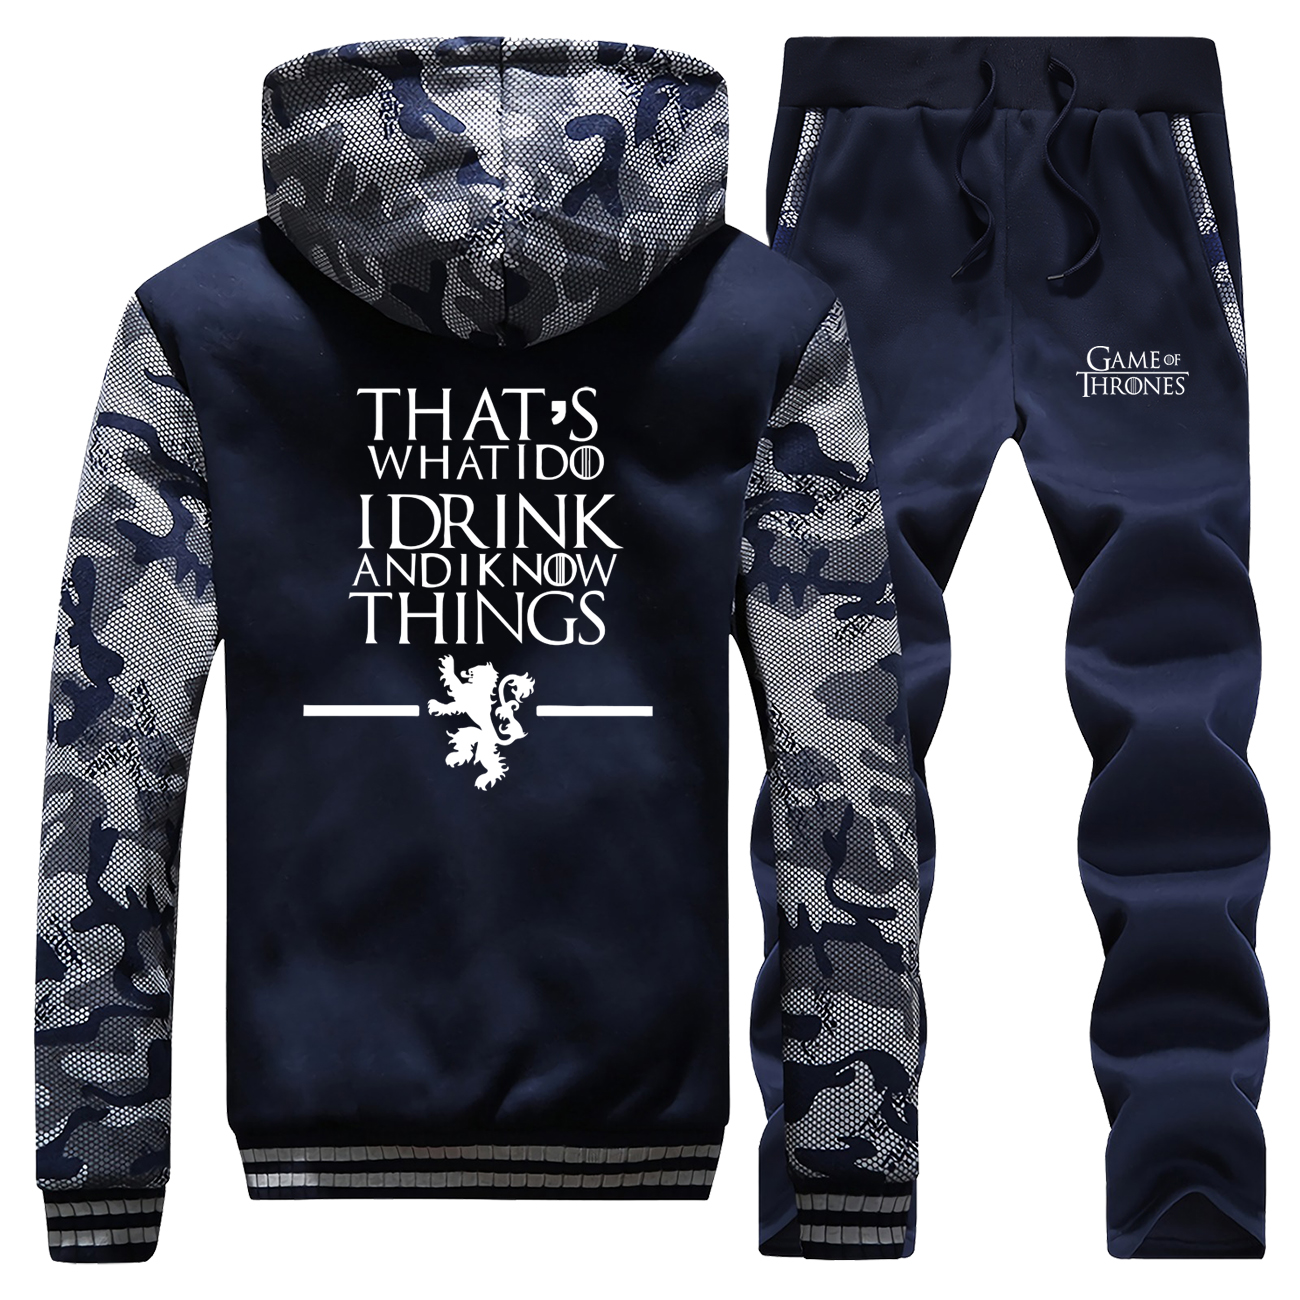 Game Of Thrones TV Show Fashion Men's Sets That's What I Do I Drink And Know Things House Stark Pants Sweatshirt Casual Male Set